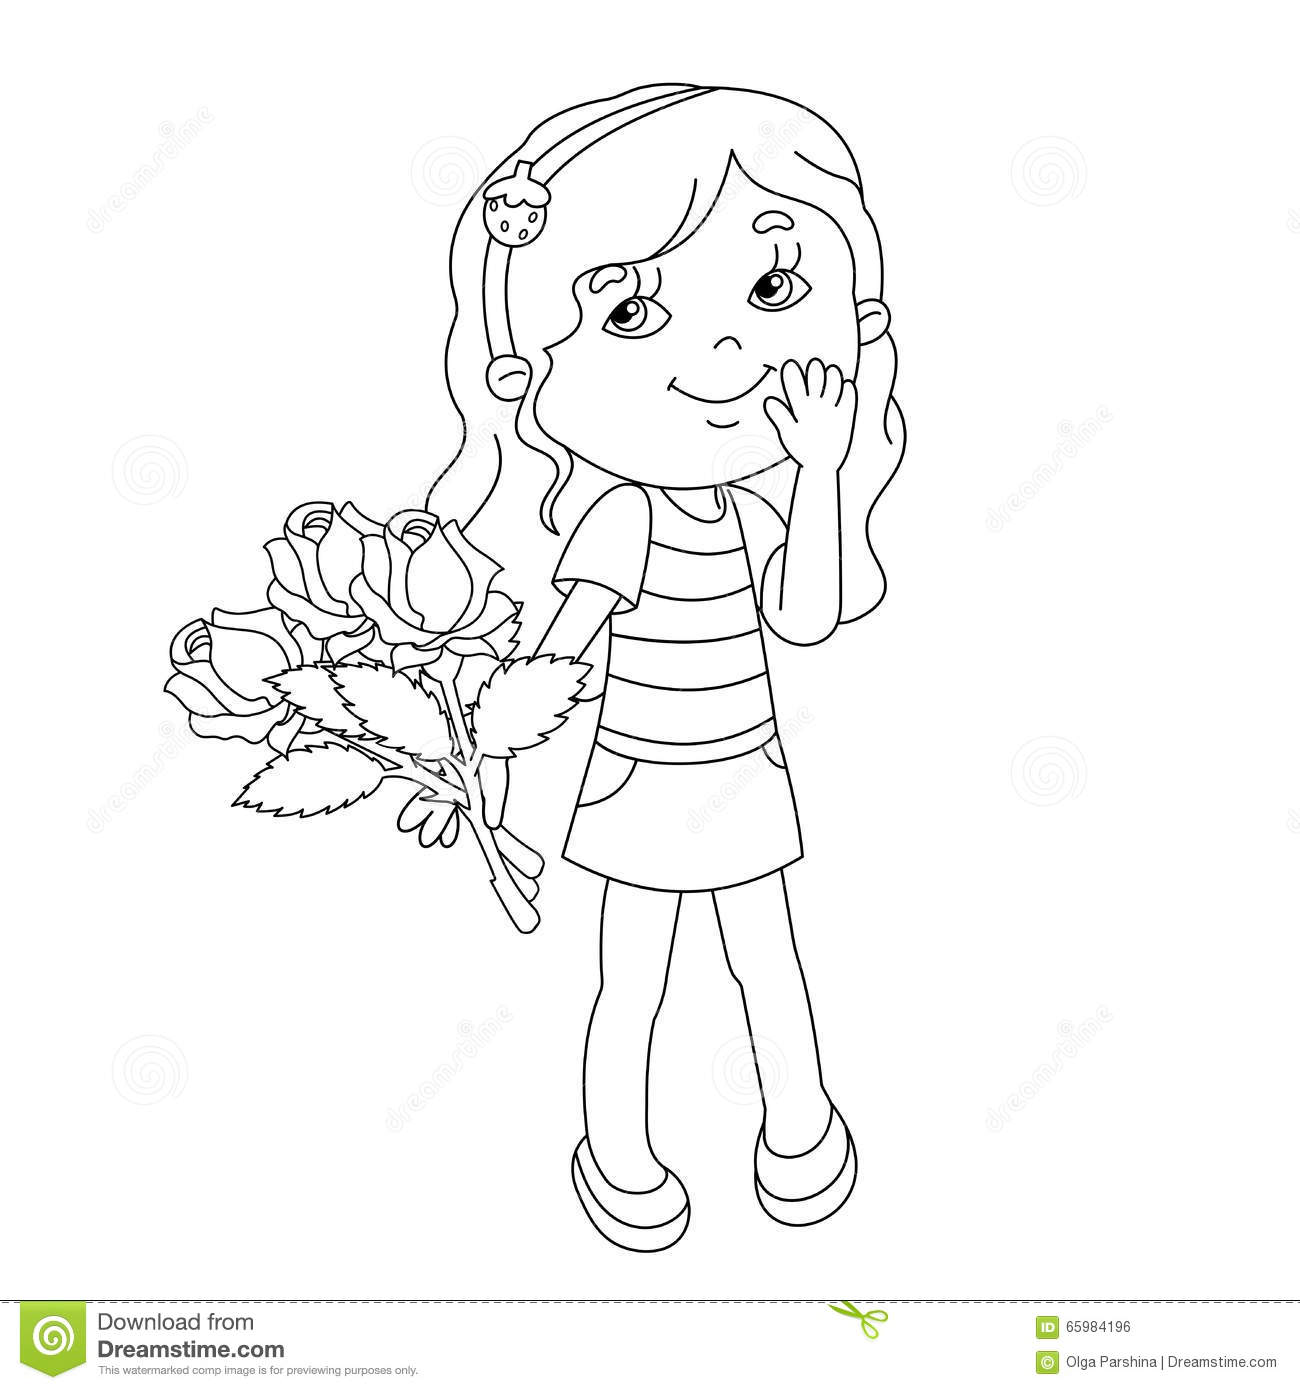 Coloring Page Outline Of Girl With Bouquet Of Roses In Hand Stock ...